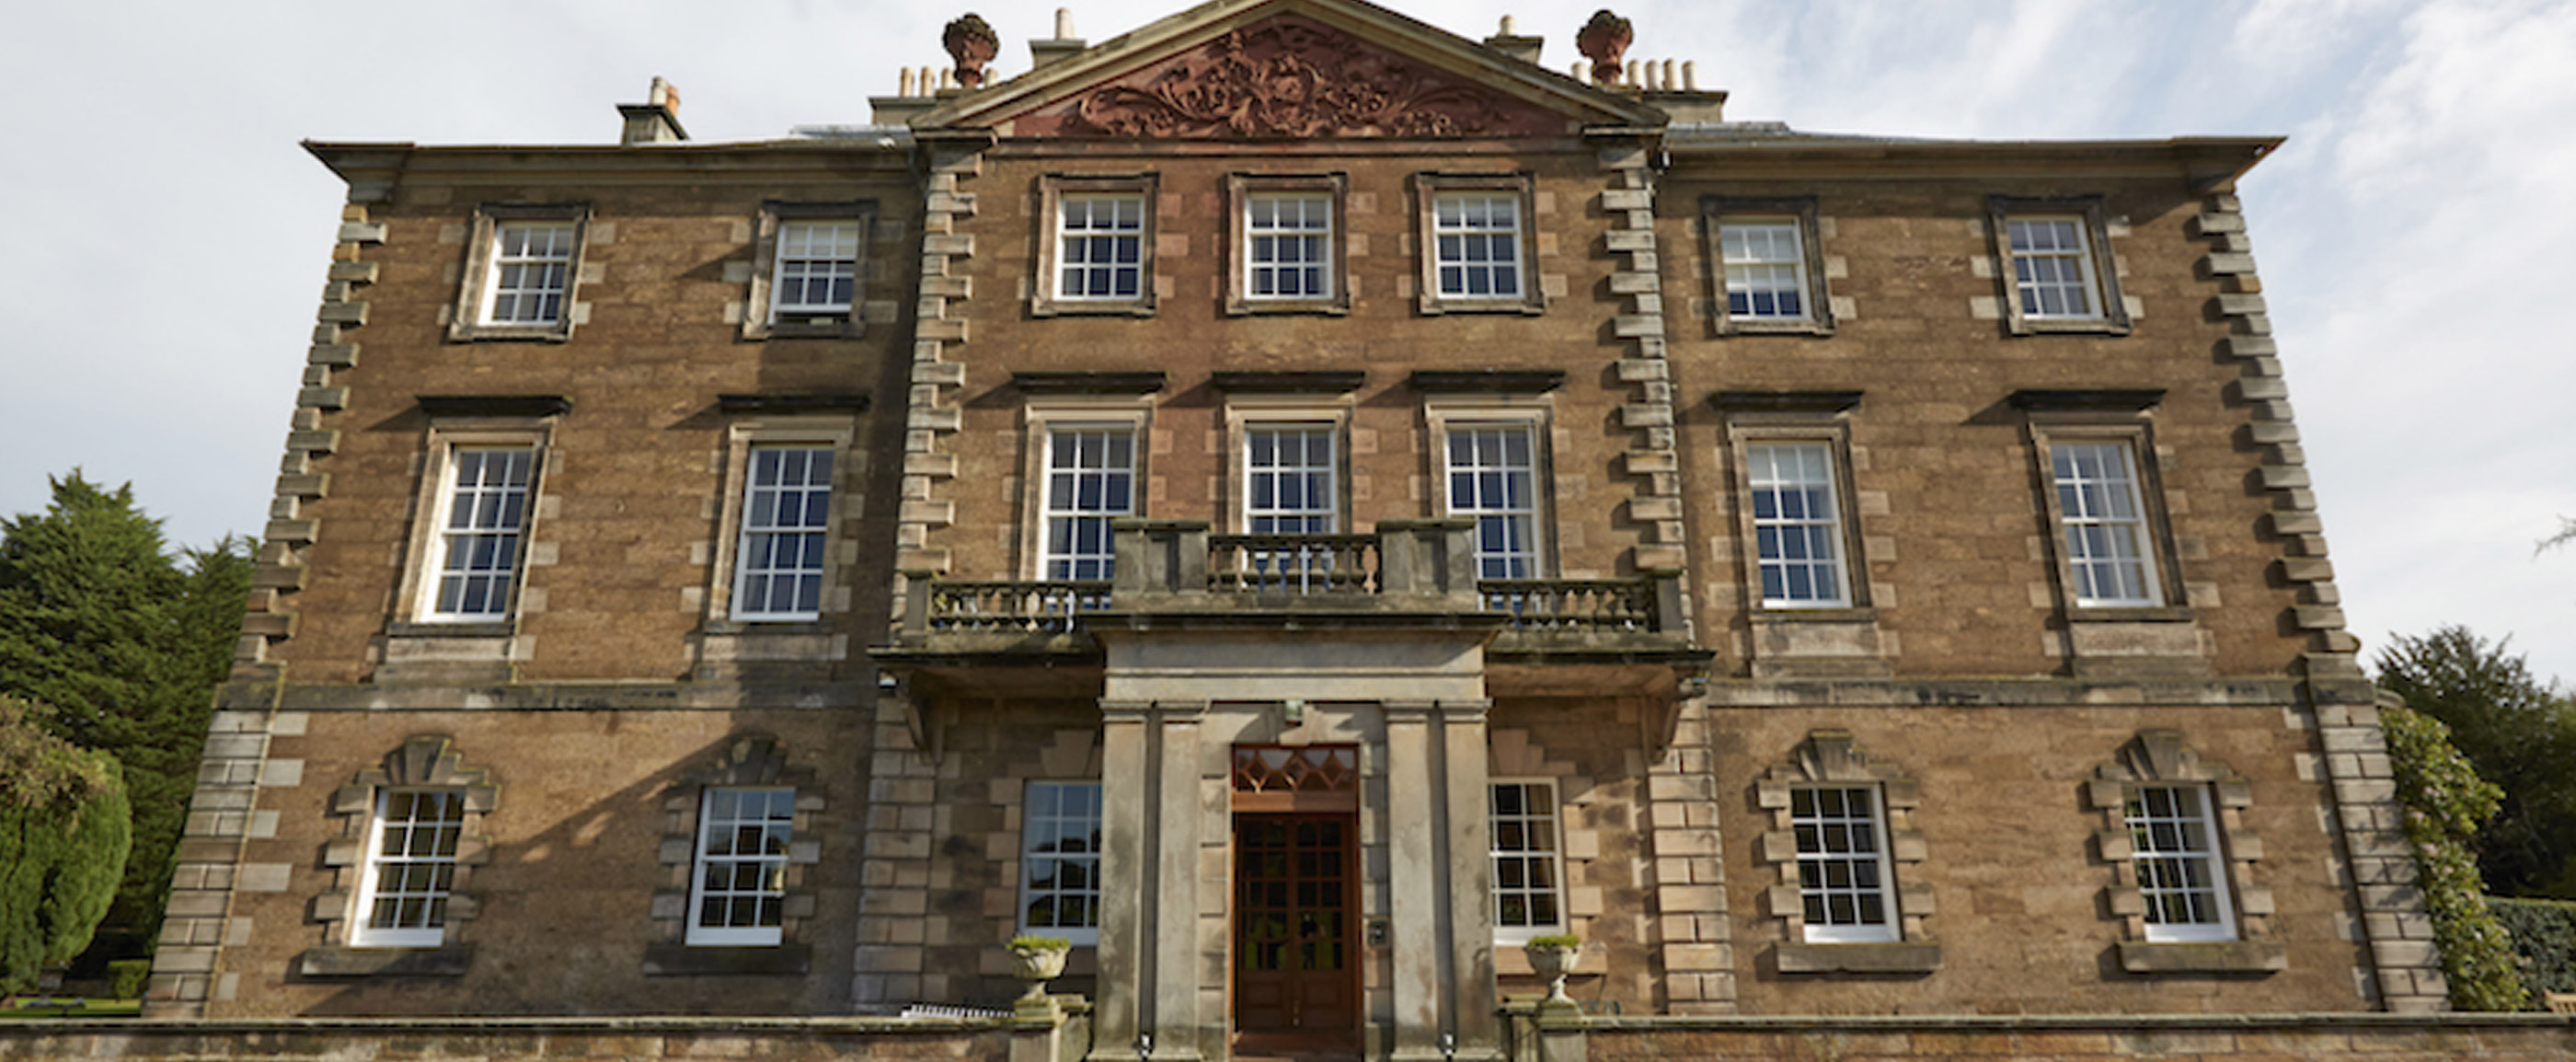 Photo of the exterior of Gilmerton House in East Lothian.